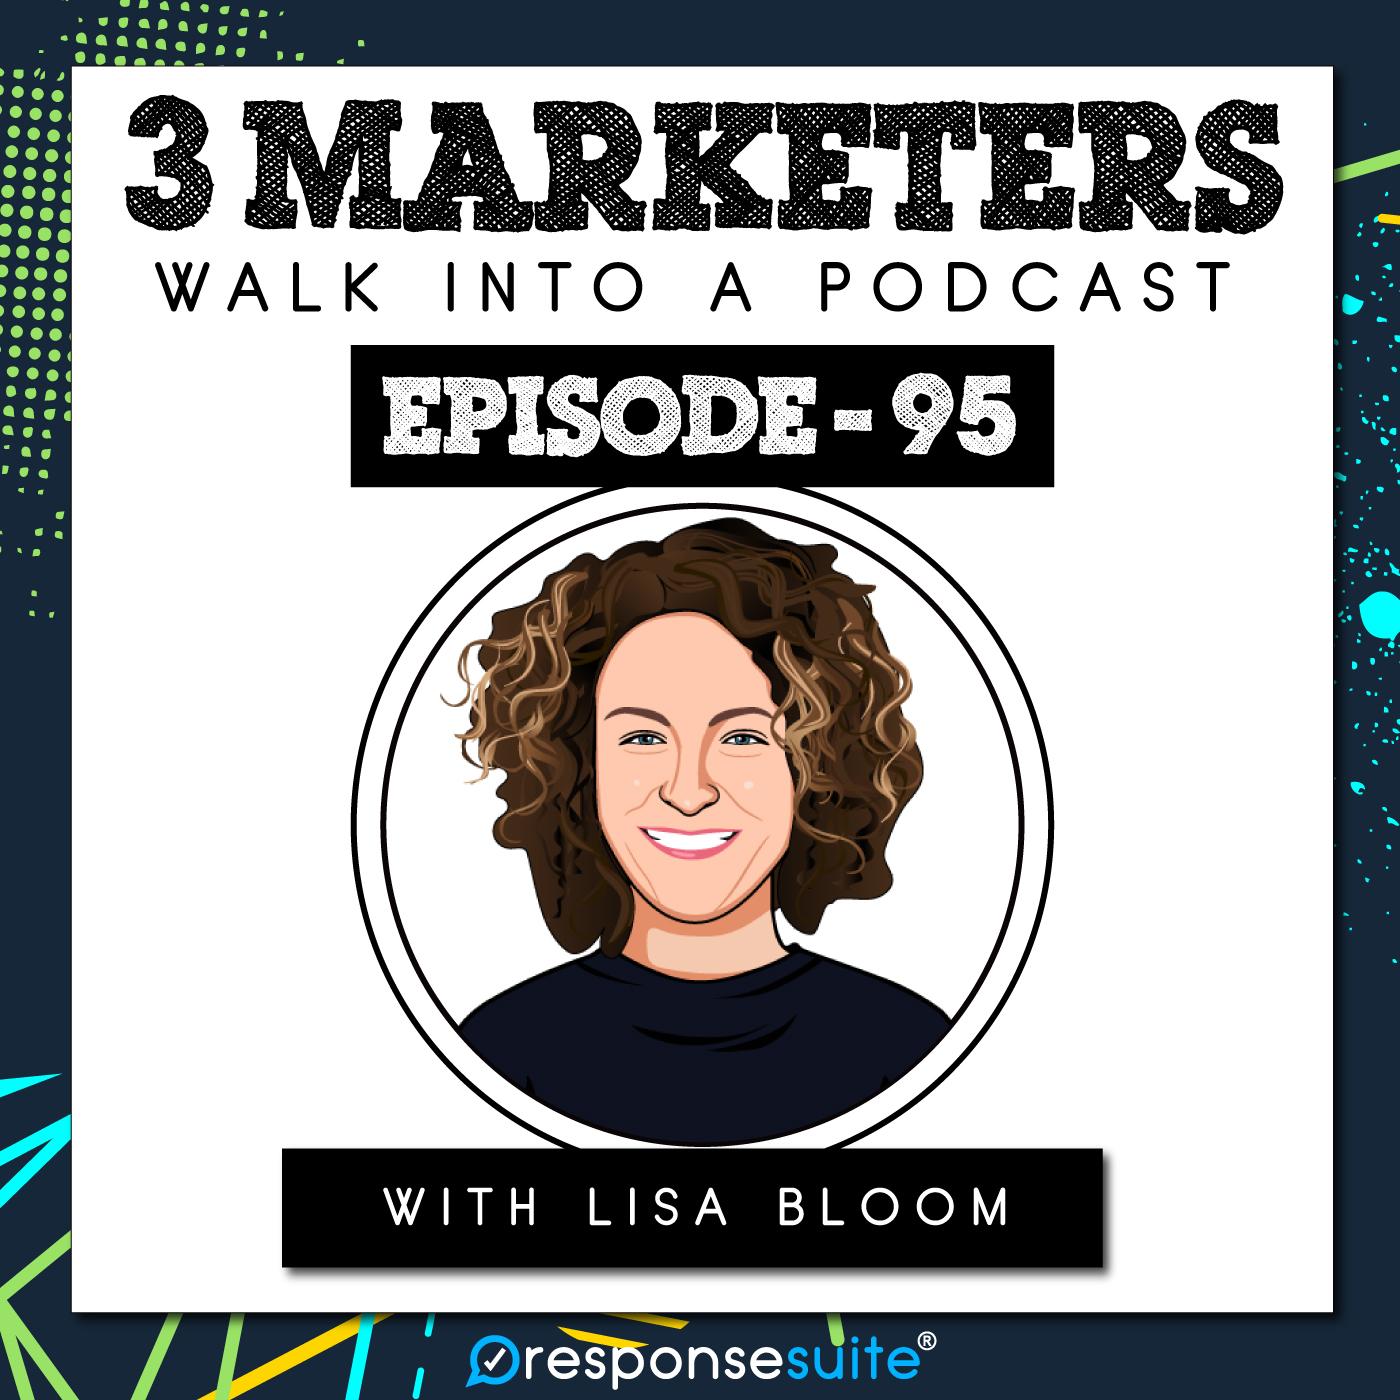 Artwork for podcast 3 Marketers Walk Into A Podcast